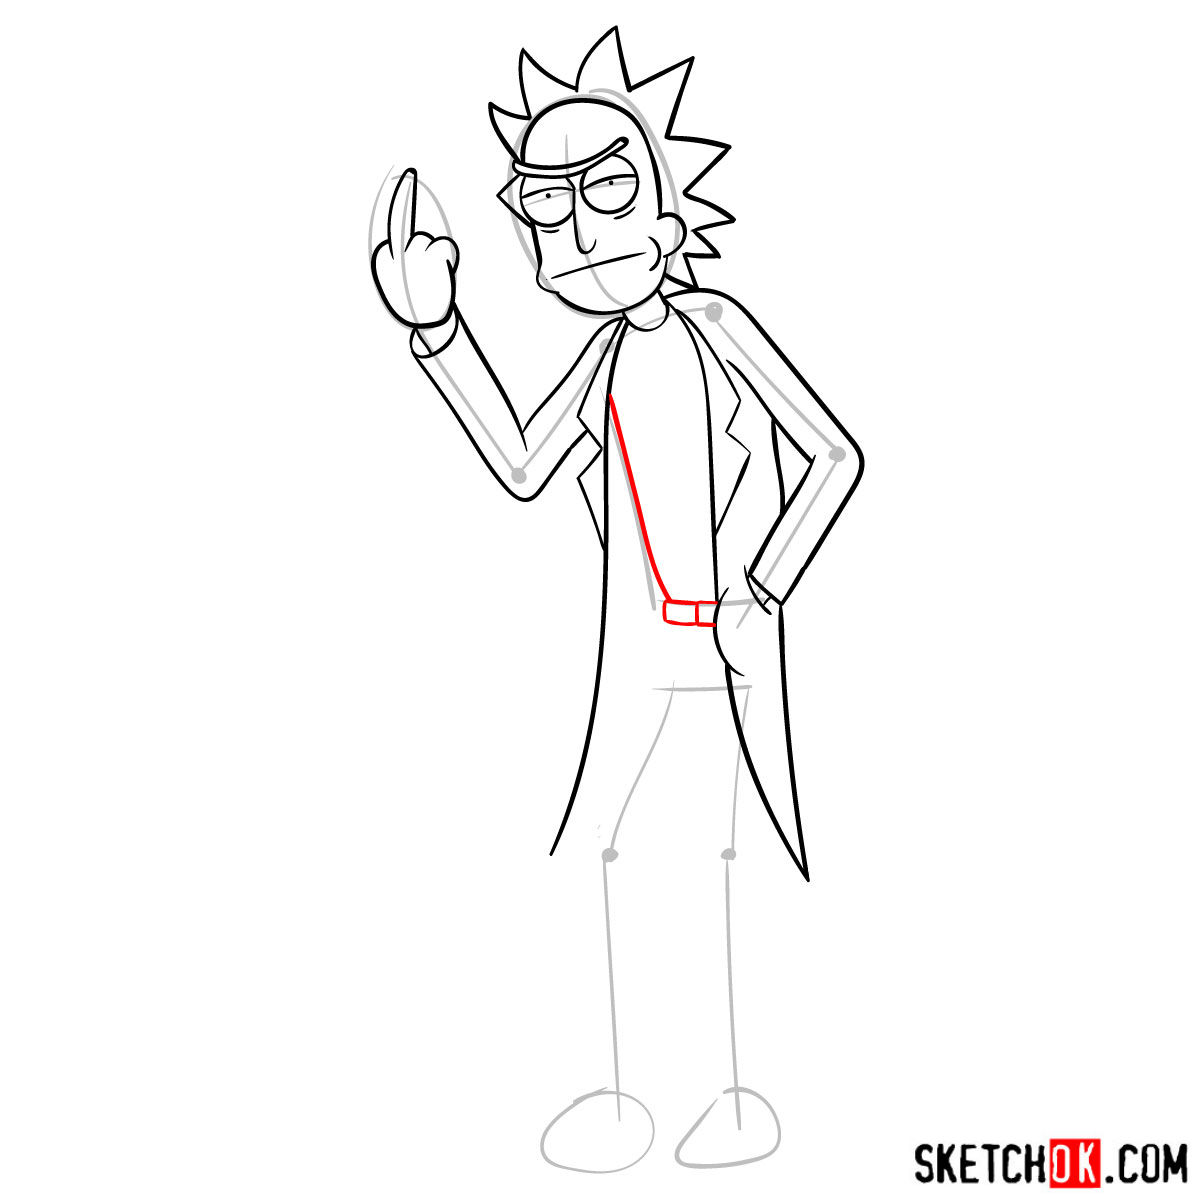 How to draw Rick showing his middle finger (Rick and Morty) - step 10